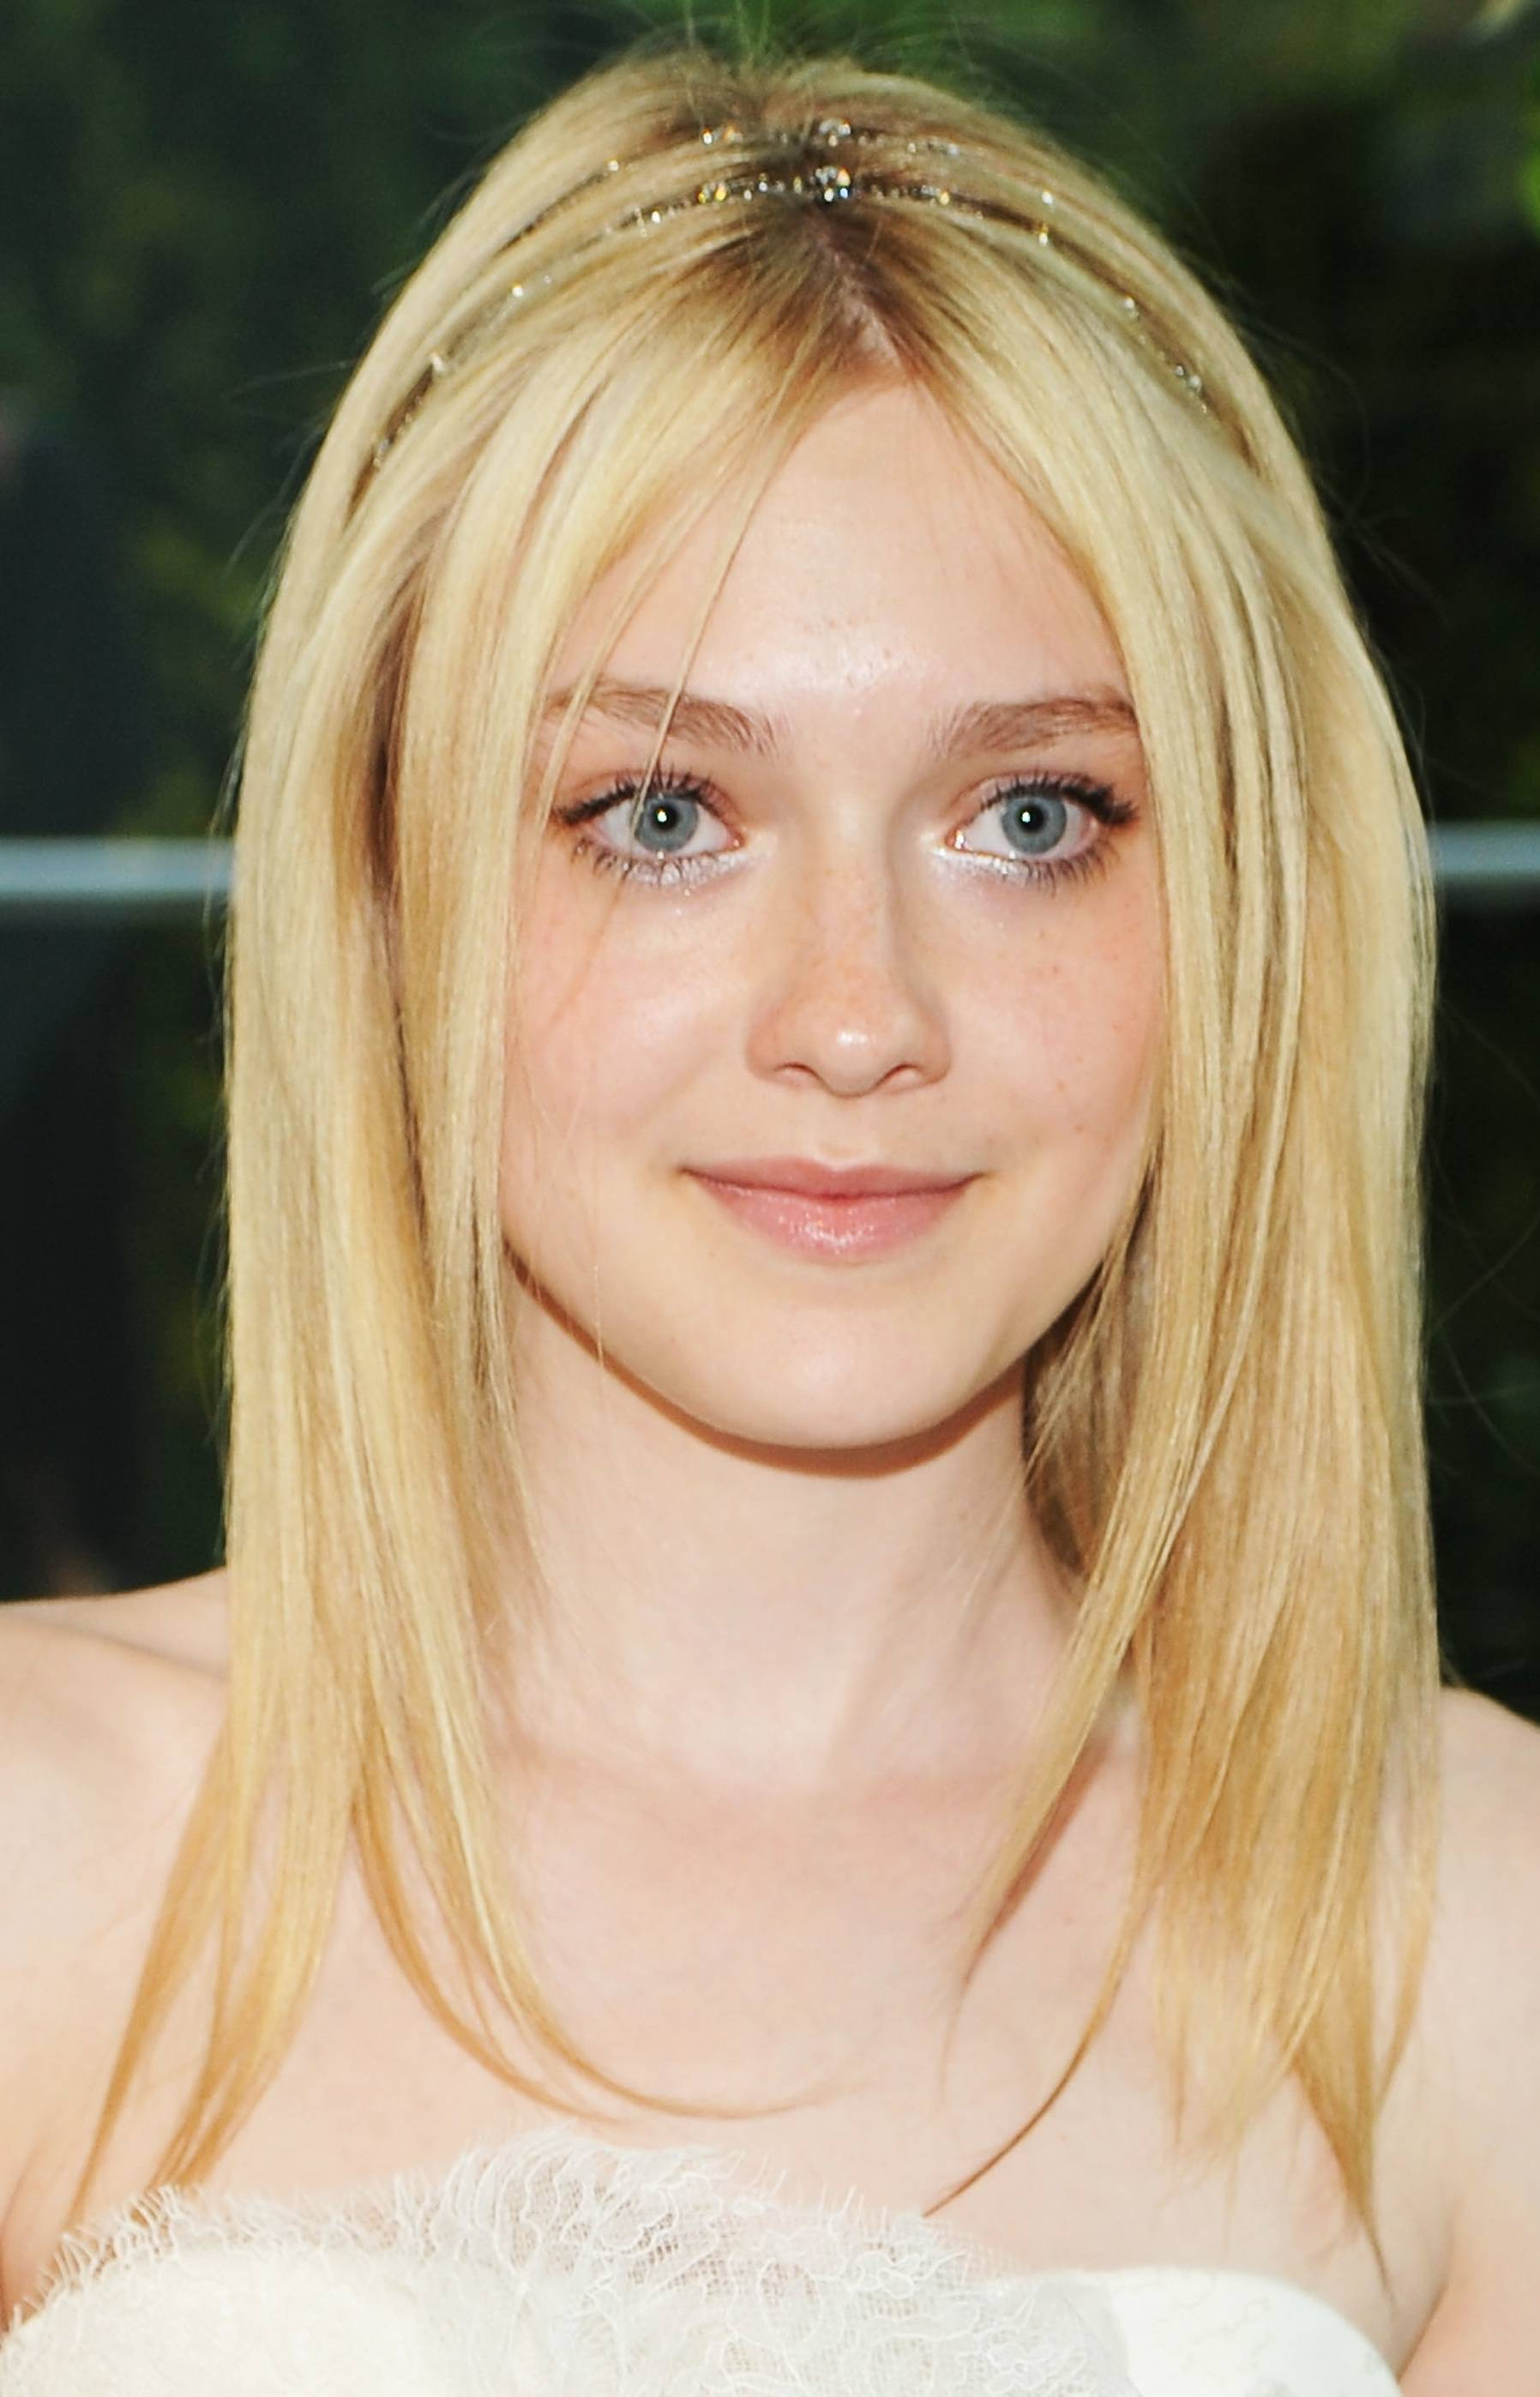 dakota fanning, dakota fanning hair, headband, celebrity headband, celebrity hair